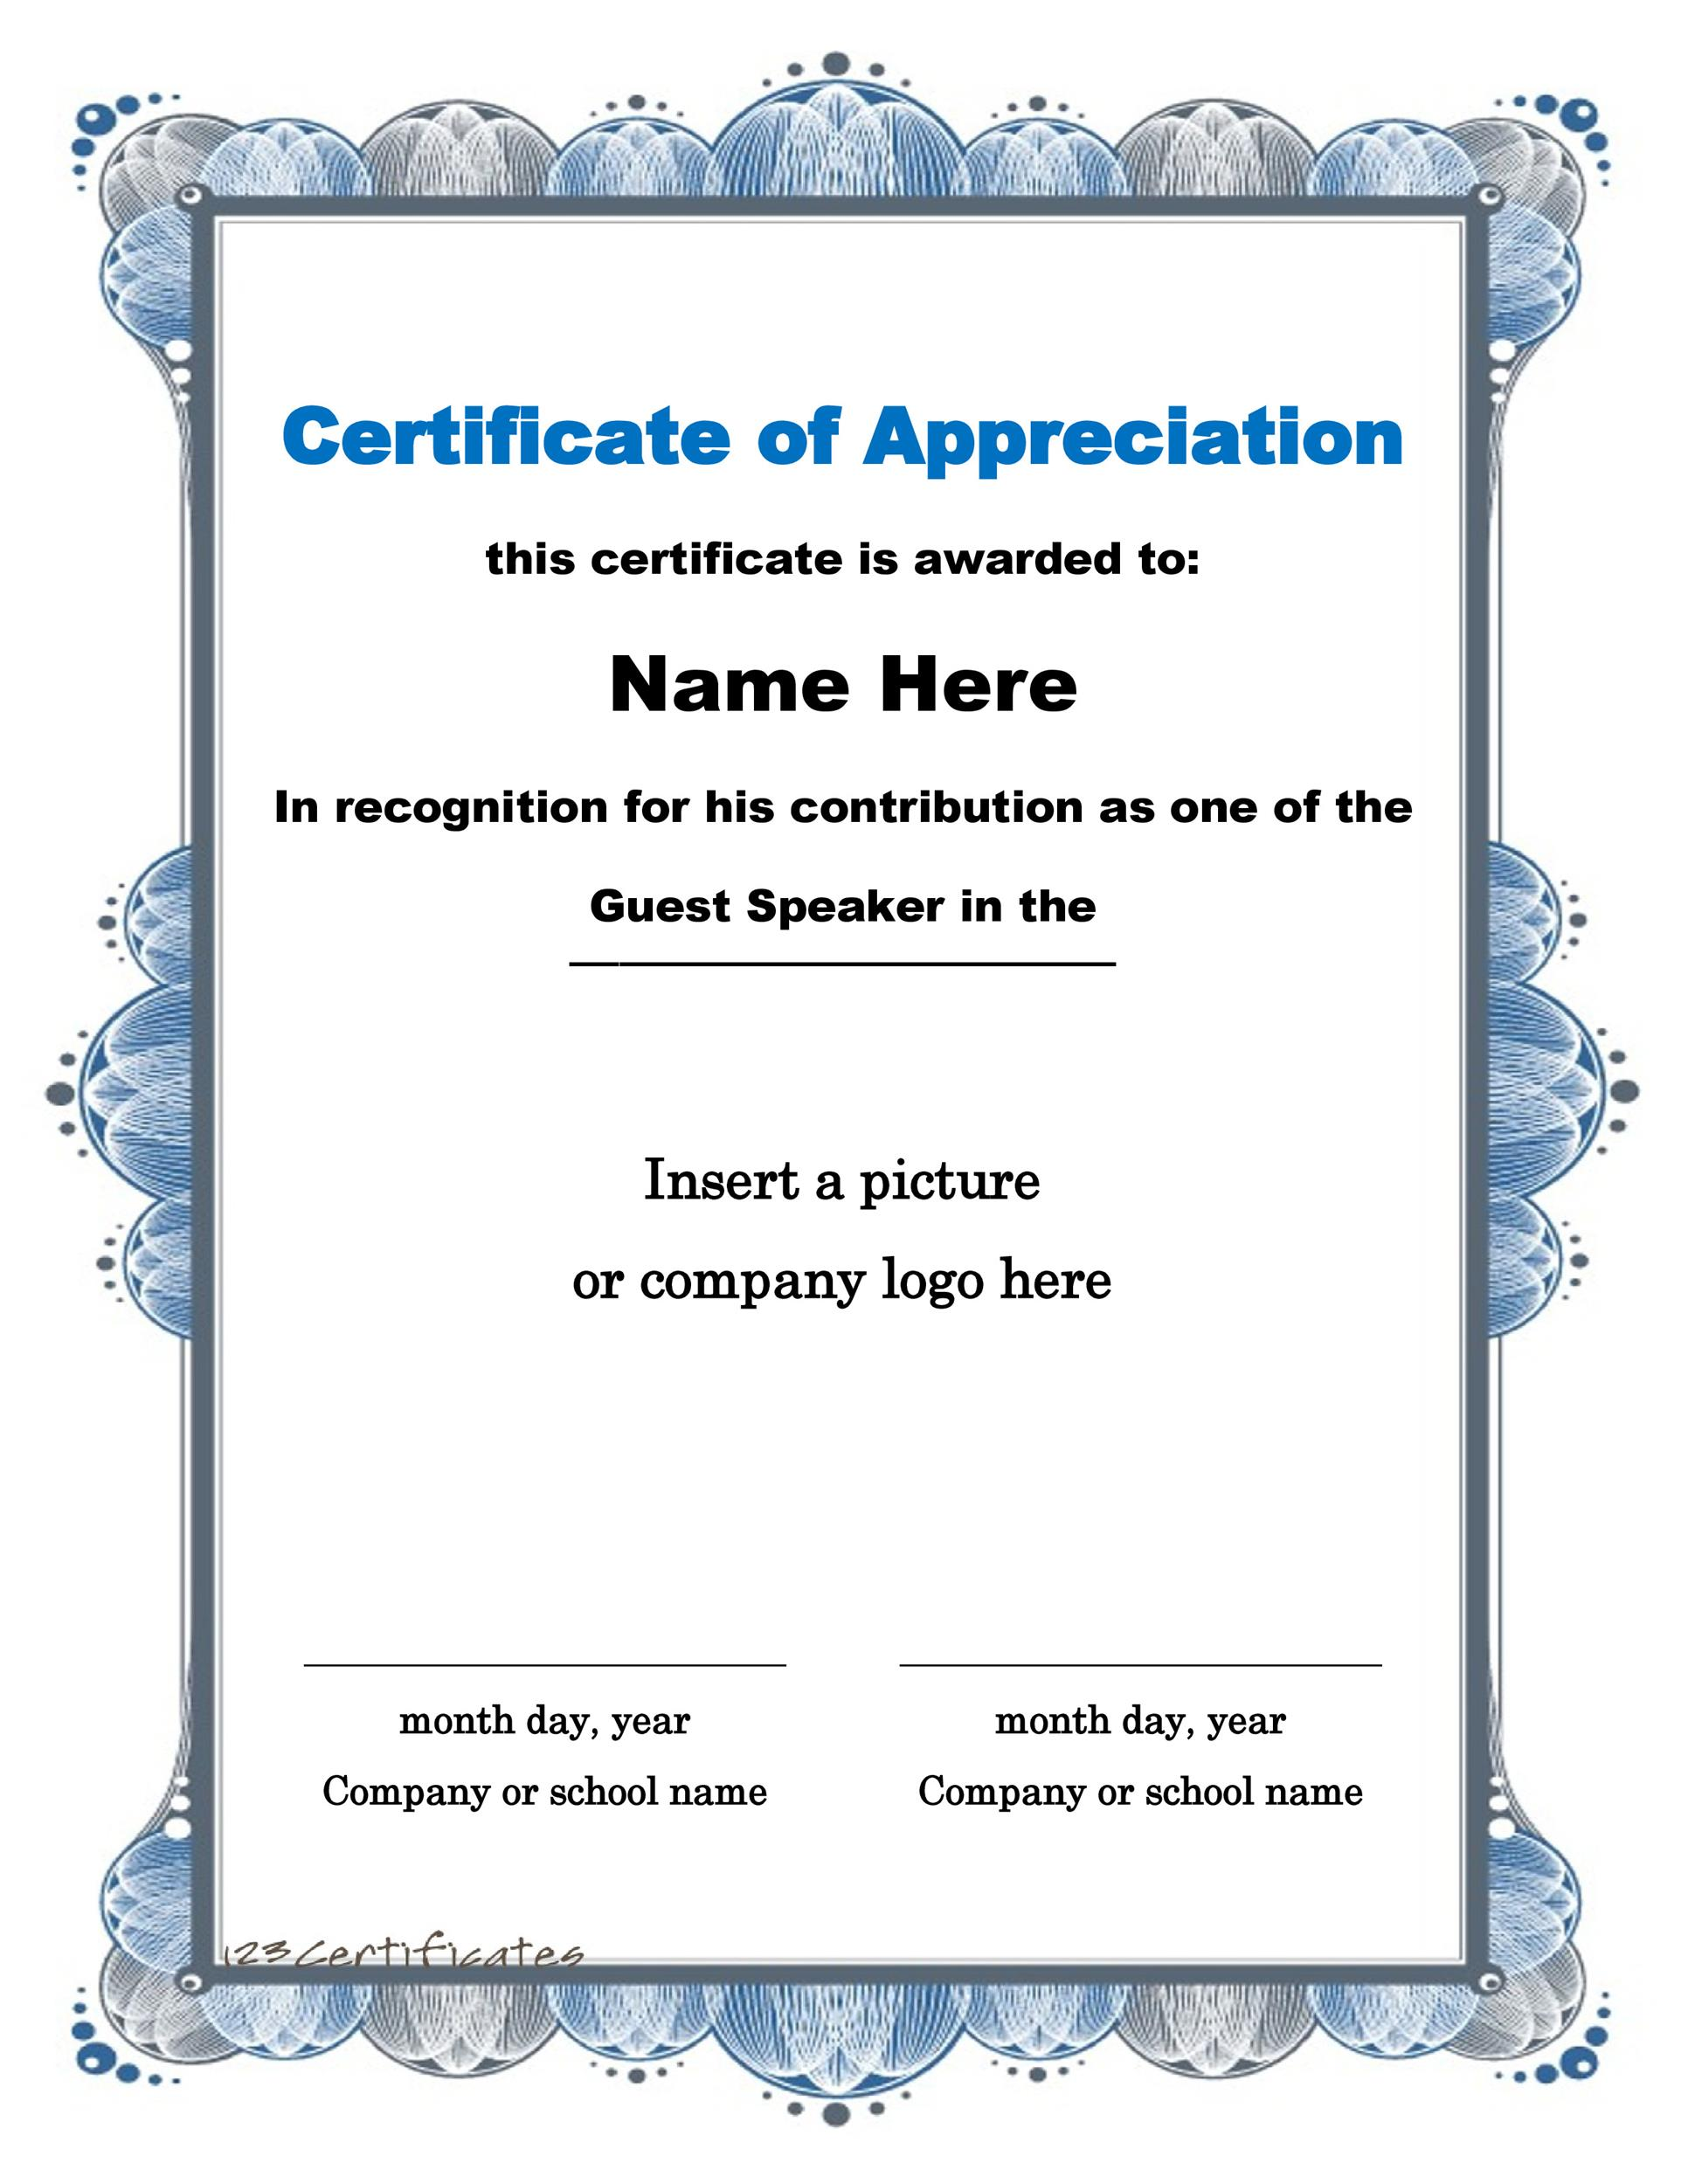 30 Free Certificate of Appreciation Templates and Letters - military certificate of appreciation template